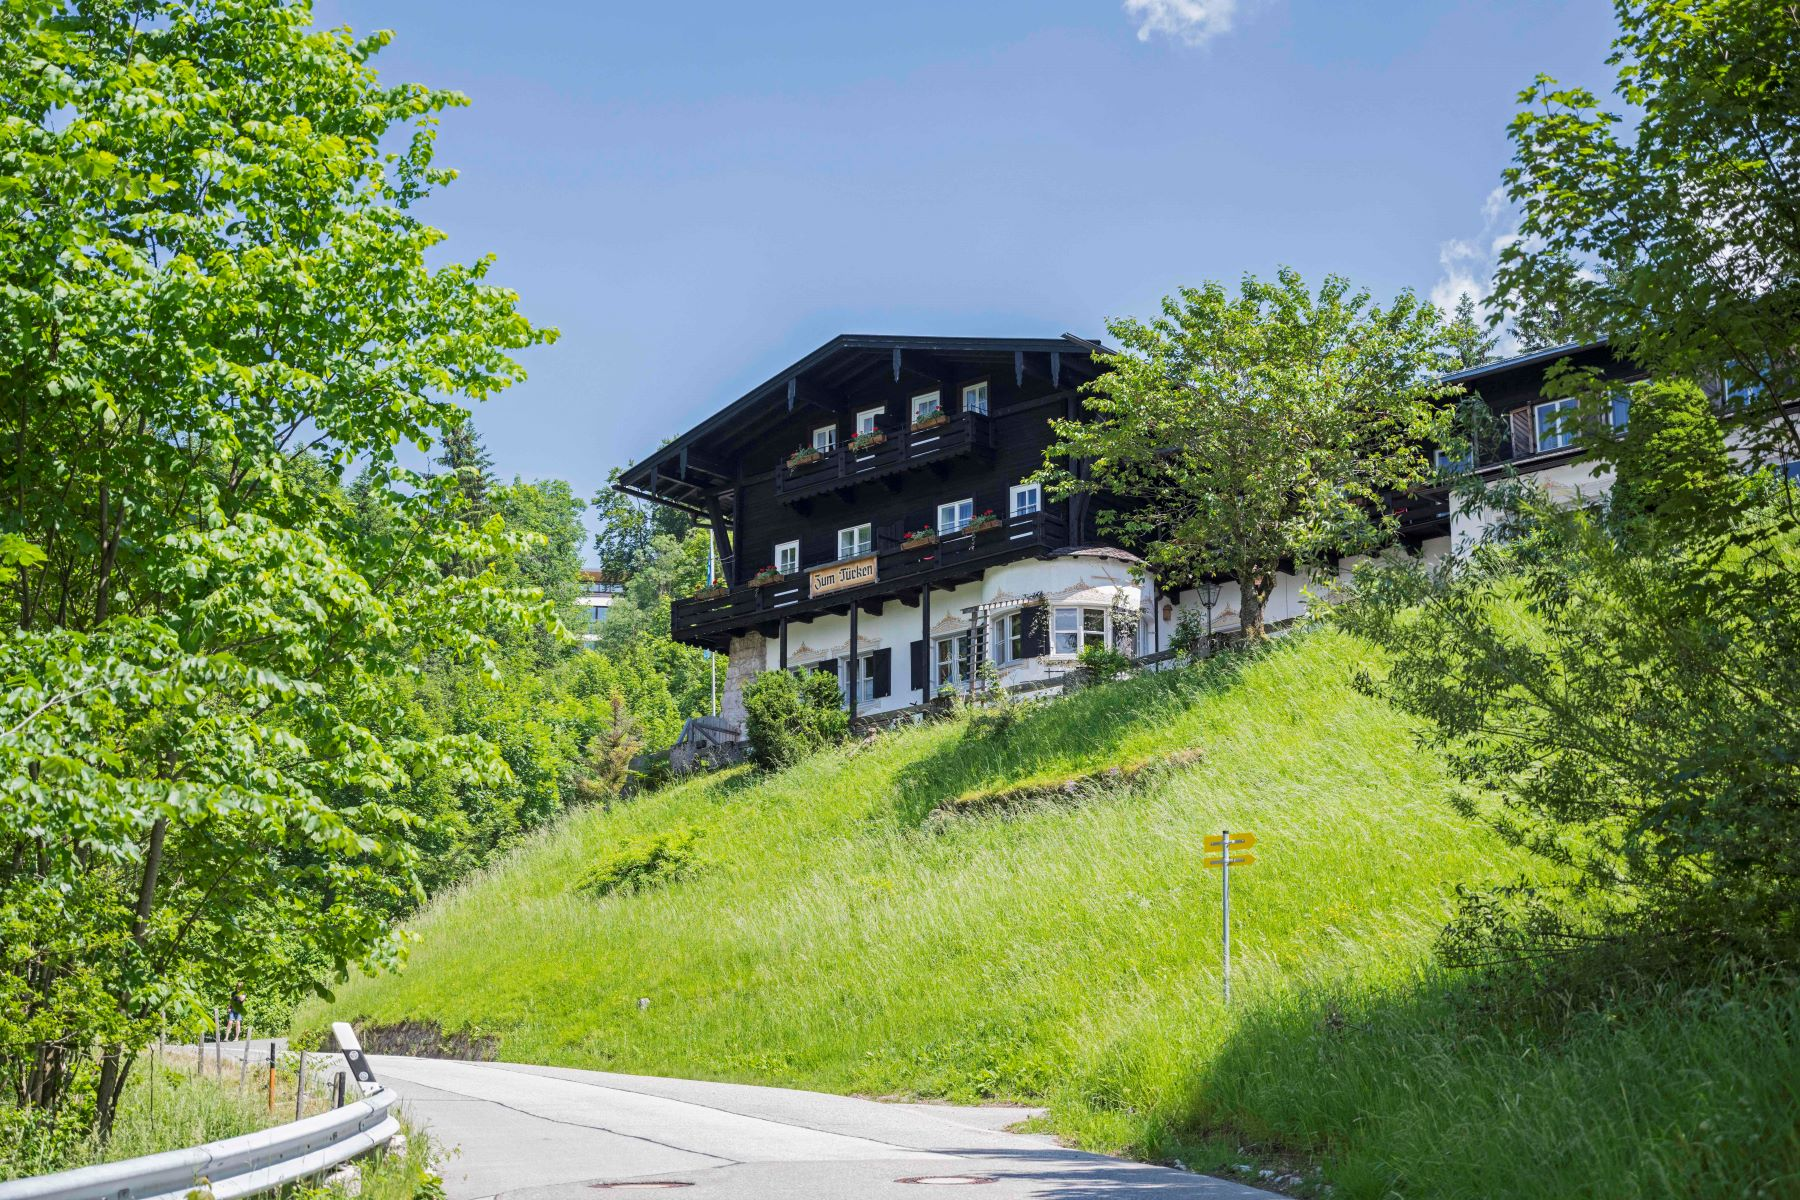 Single Family Homes for Sale at A JOURNEY THROUGH TIME WITH A DREAMLIKE SCENERY Berchtesgaden, Bavaria Germany